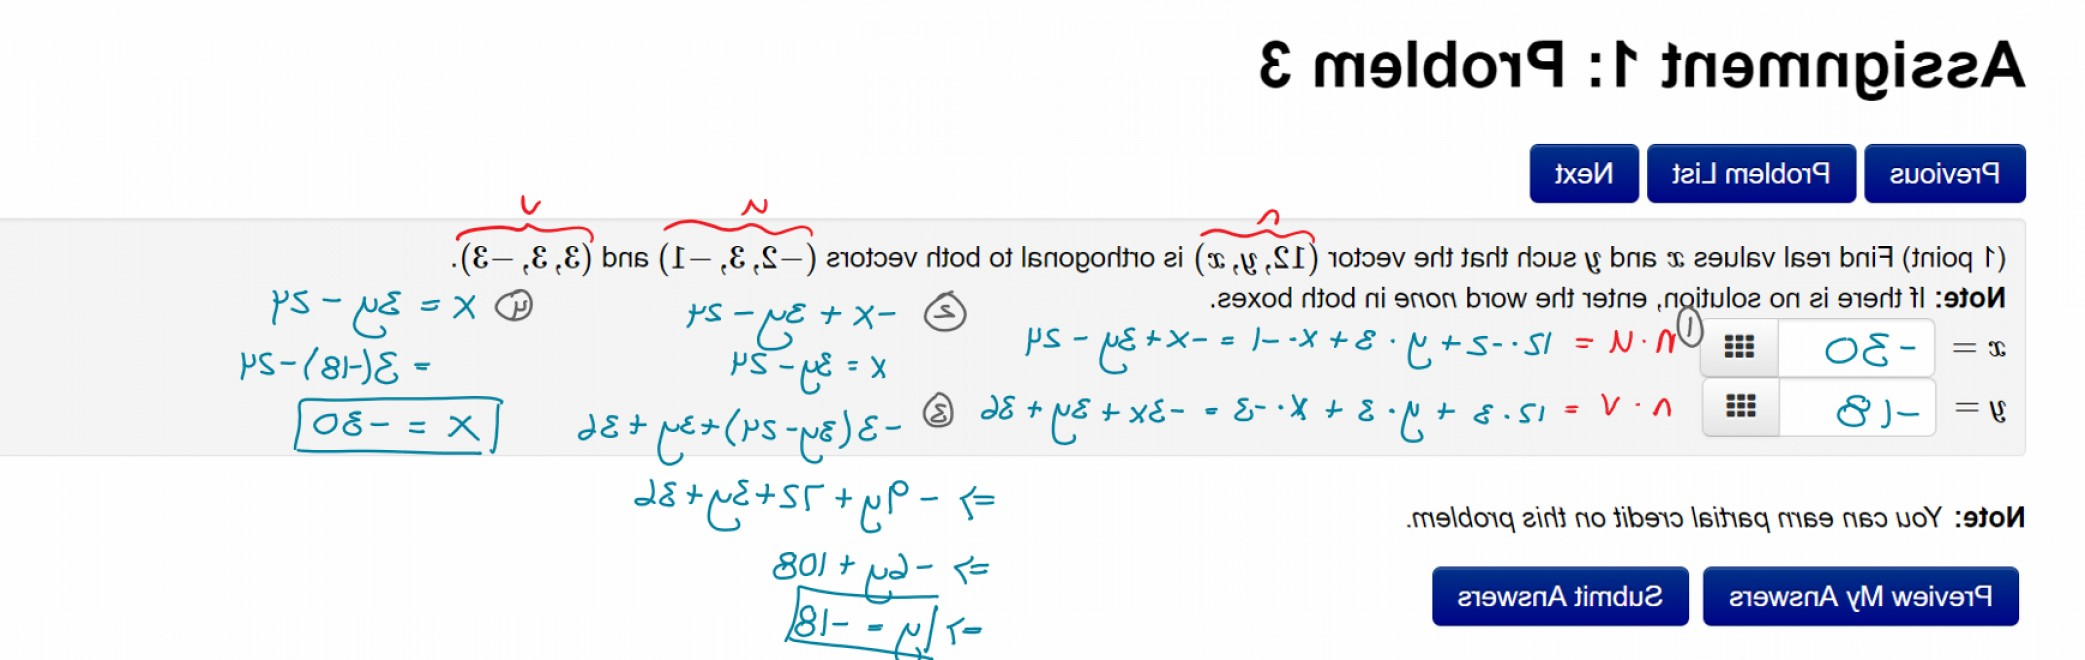 Unit Vectors Orhogonal: Real Values X And Y Such That A Vector Is Orthogonal To Other Vectors